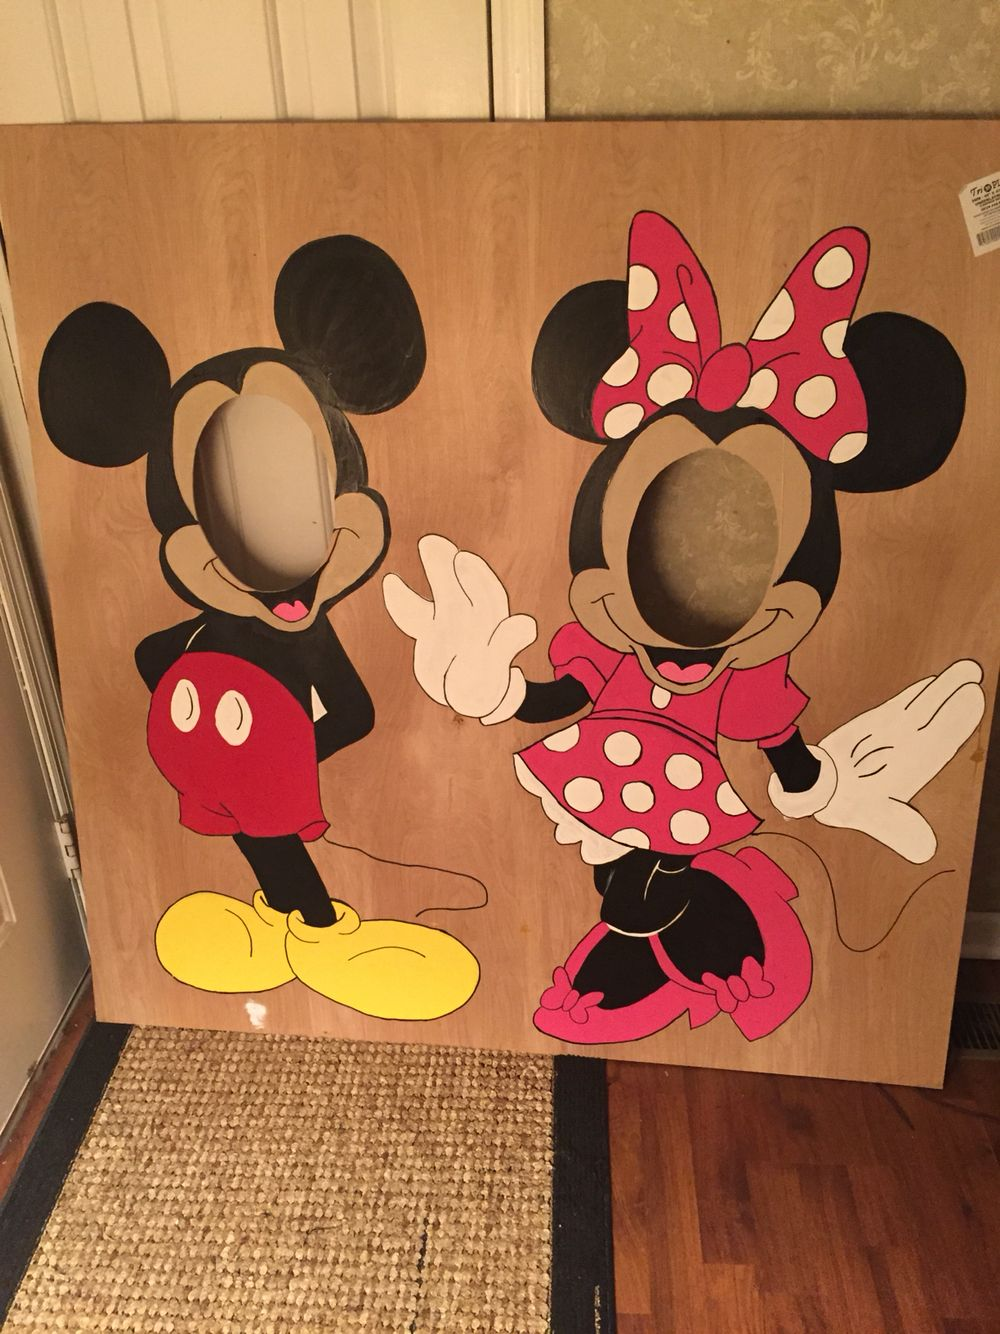 mickey and minnie face in hole handmade laneyturns1 minniemouseparty kindergeburtstag. Black Bedroom Furniture Sets. Home Design Ideas